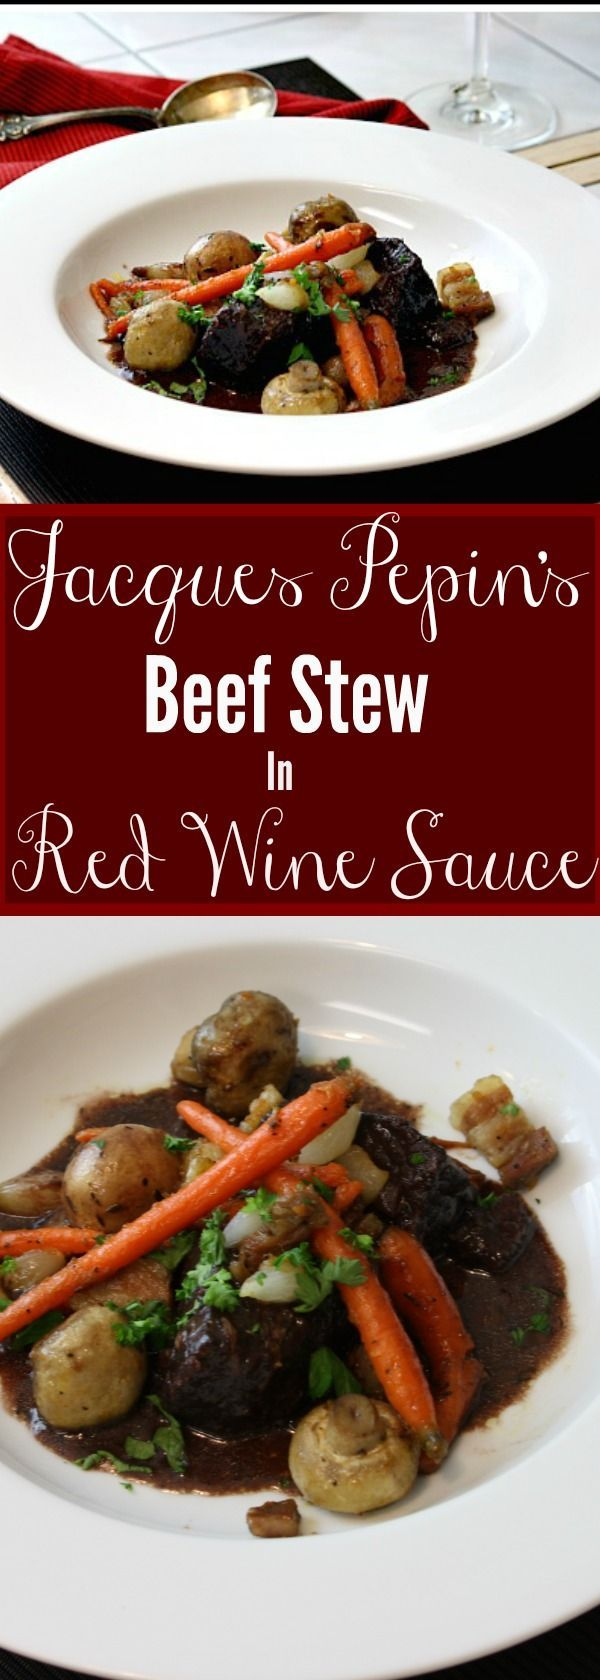 This Red Wine Beef Stew is rich and hearty, with tender beef and a velvety, savory sauce that you will not believe! This is Jacques Pepin's famous beef stew recipe. #stew #wine via @lannisam